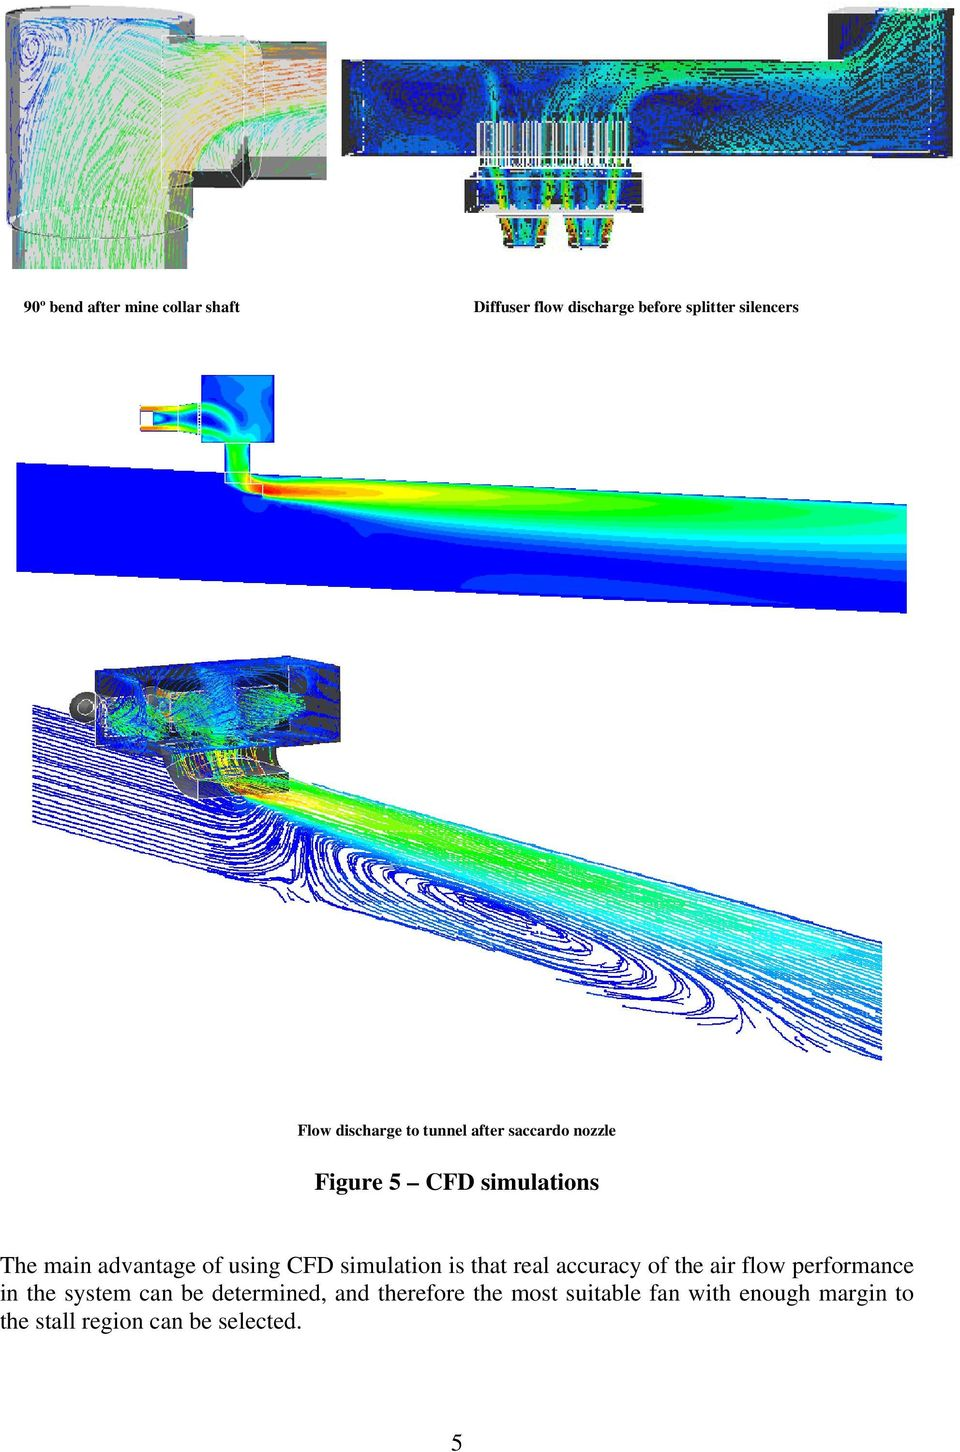 using CFD simulation is that real accuracy of the air flow performance in the system can be